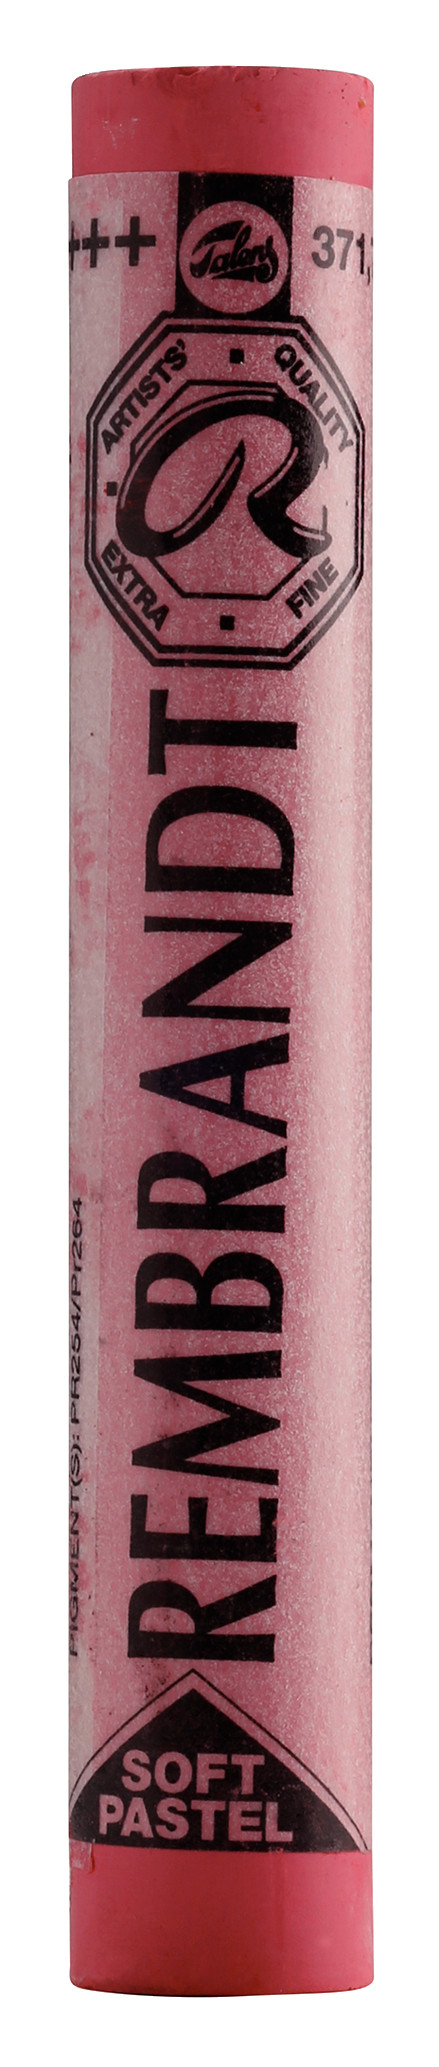 Rembrandt Soft Pastel Round Full Stick Permanent Red Deep(7) (371.7)